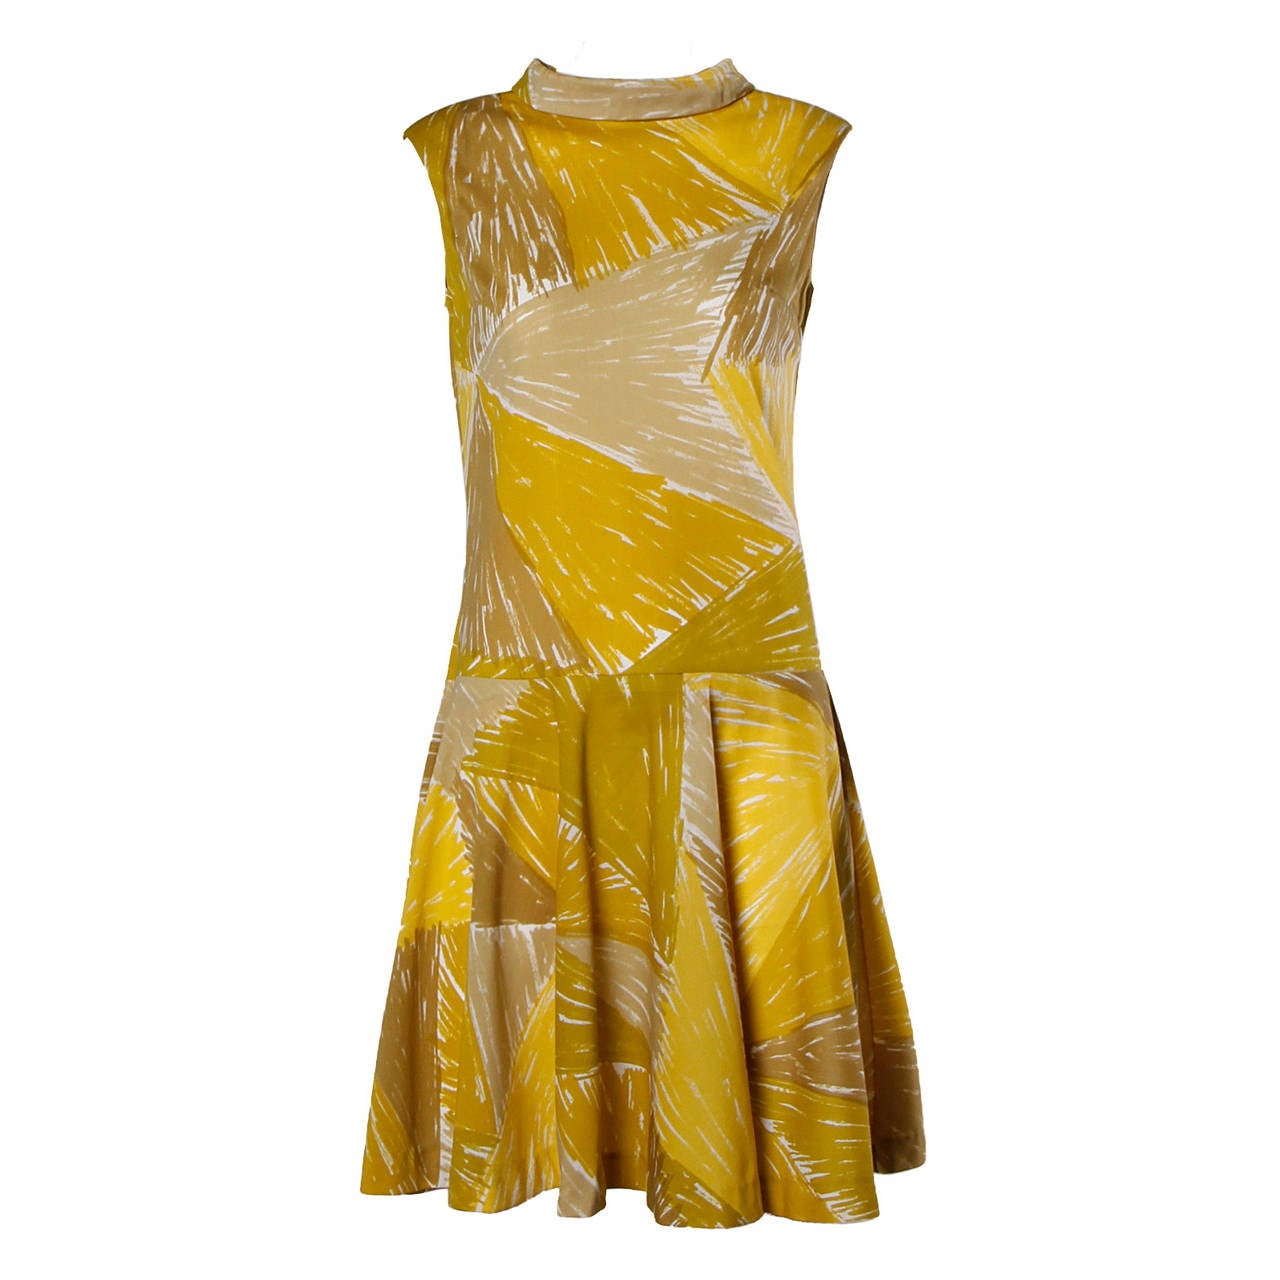 Vera Neumann Vintage 1960s Yellow Mod Painterly Print Mini Dress 1